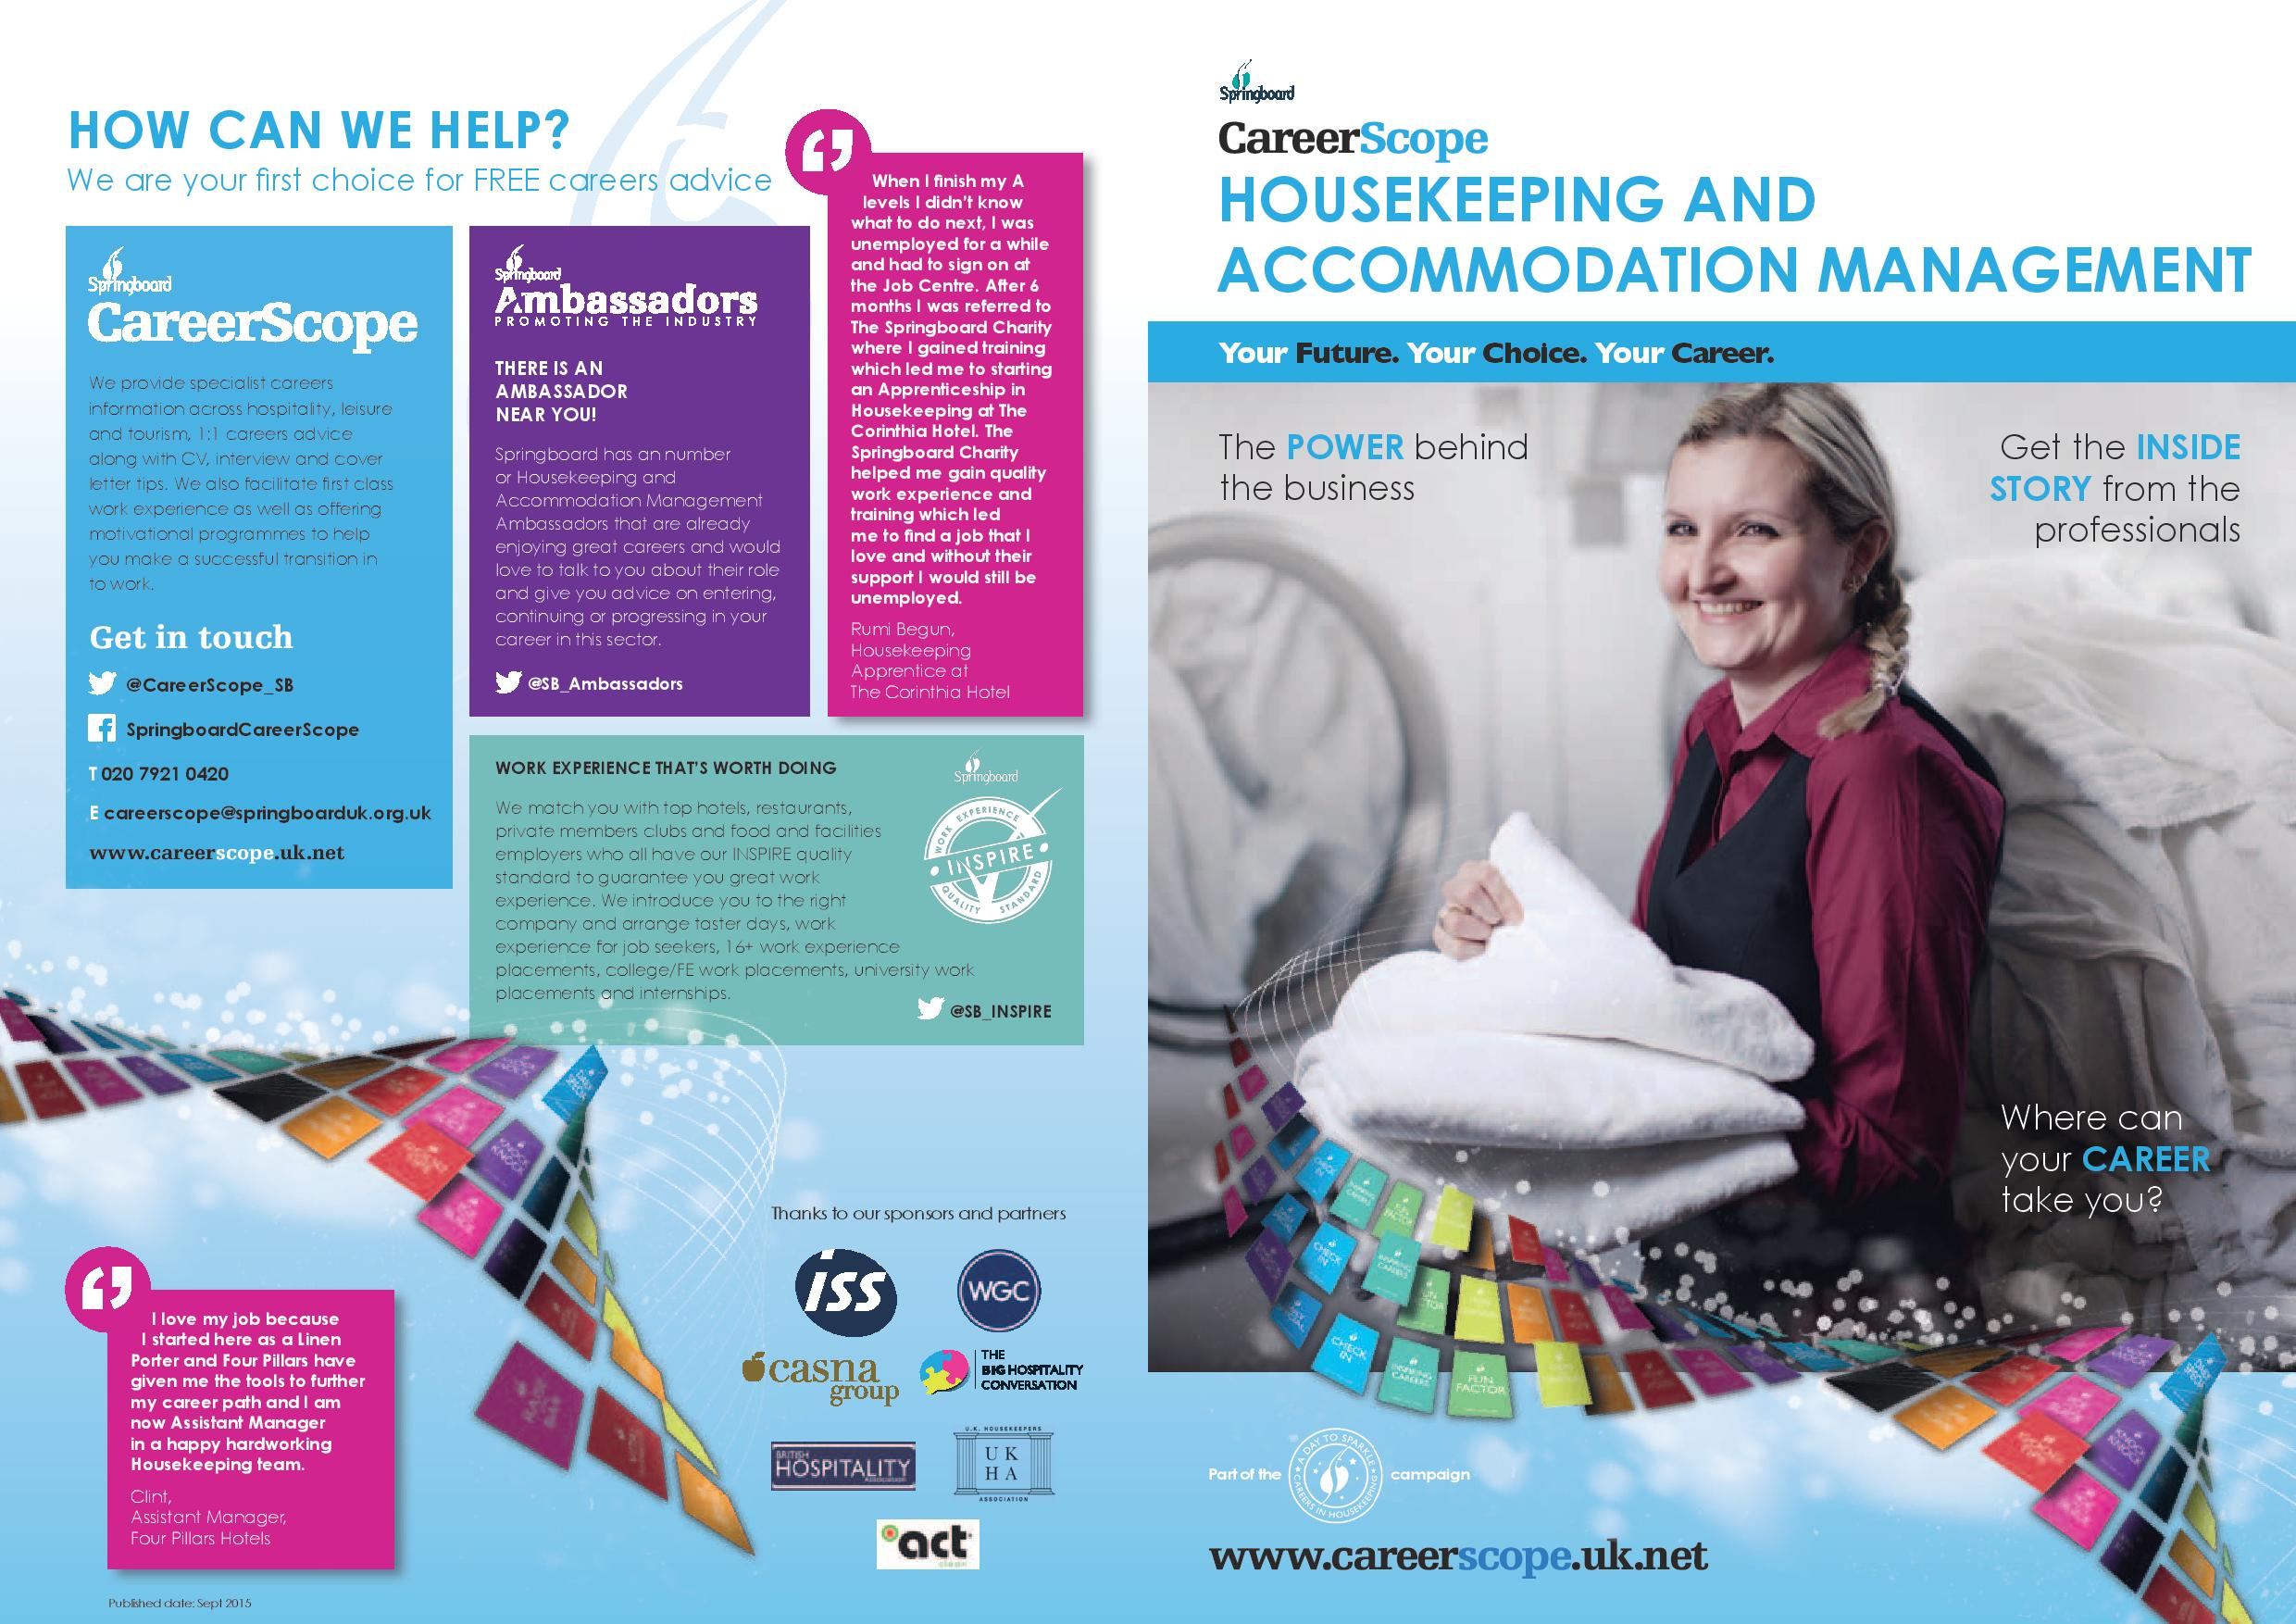 Job opportunities created in Housekeeping and Accommodation Management